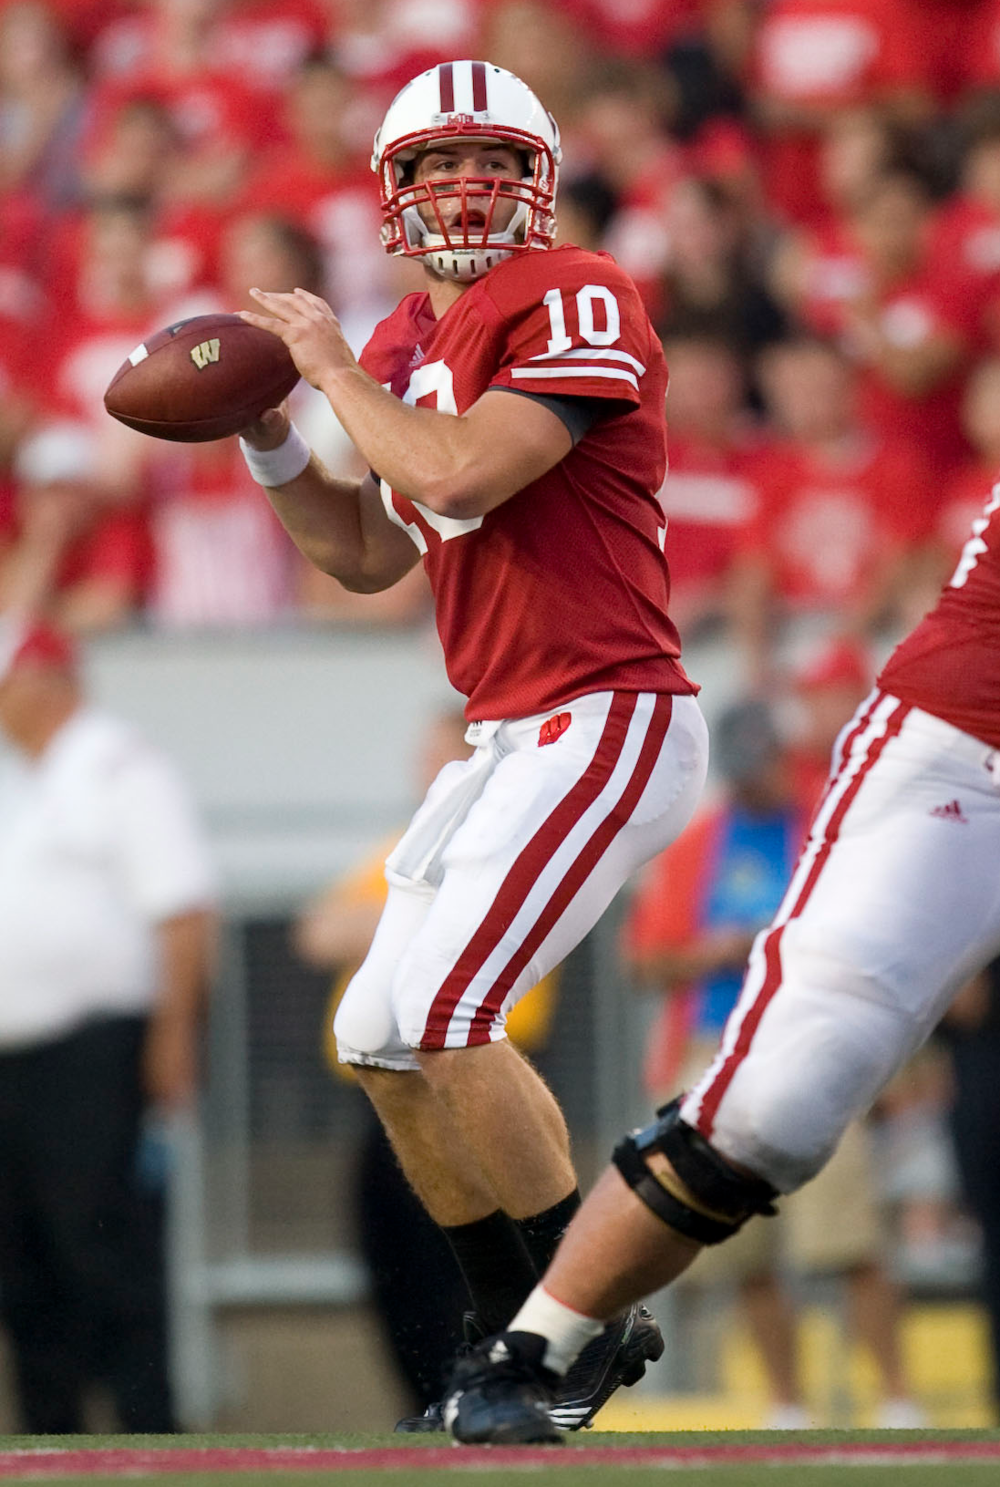 The Badgers hope Curt Phillips can spark the offense starting the last three regular season games.